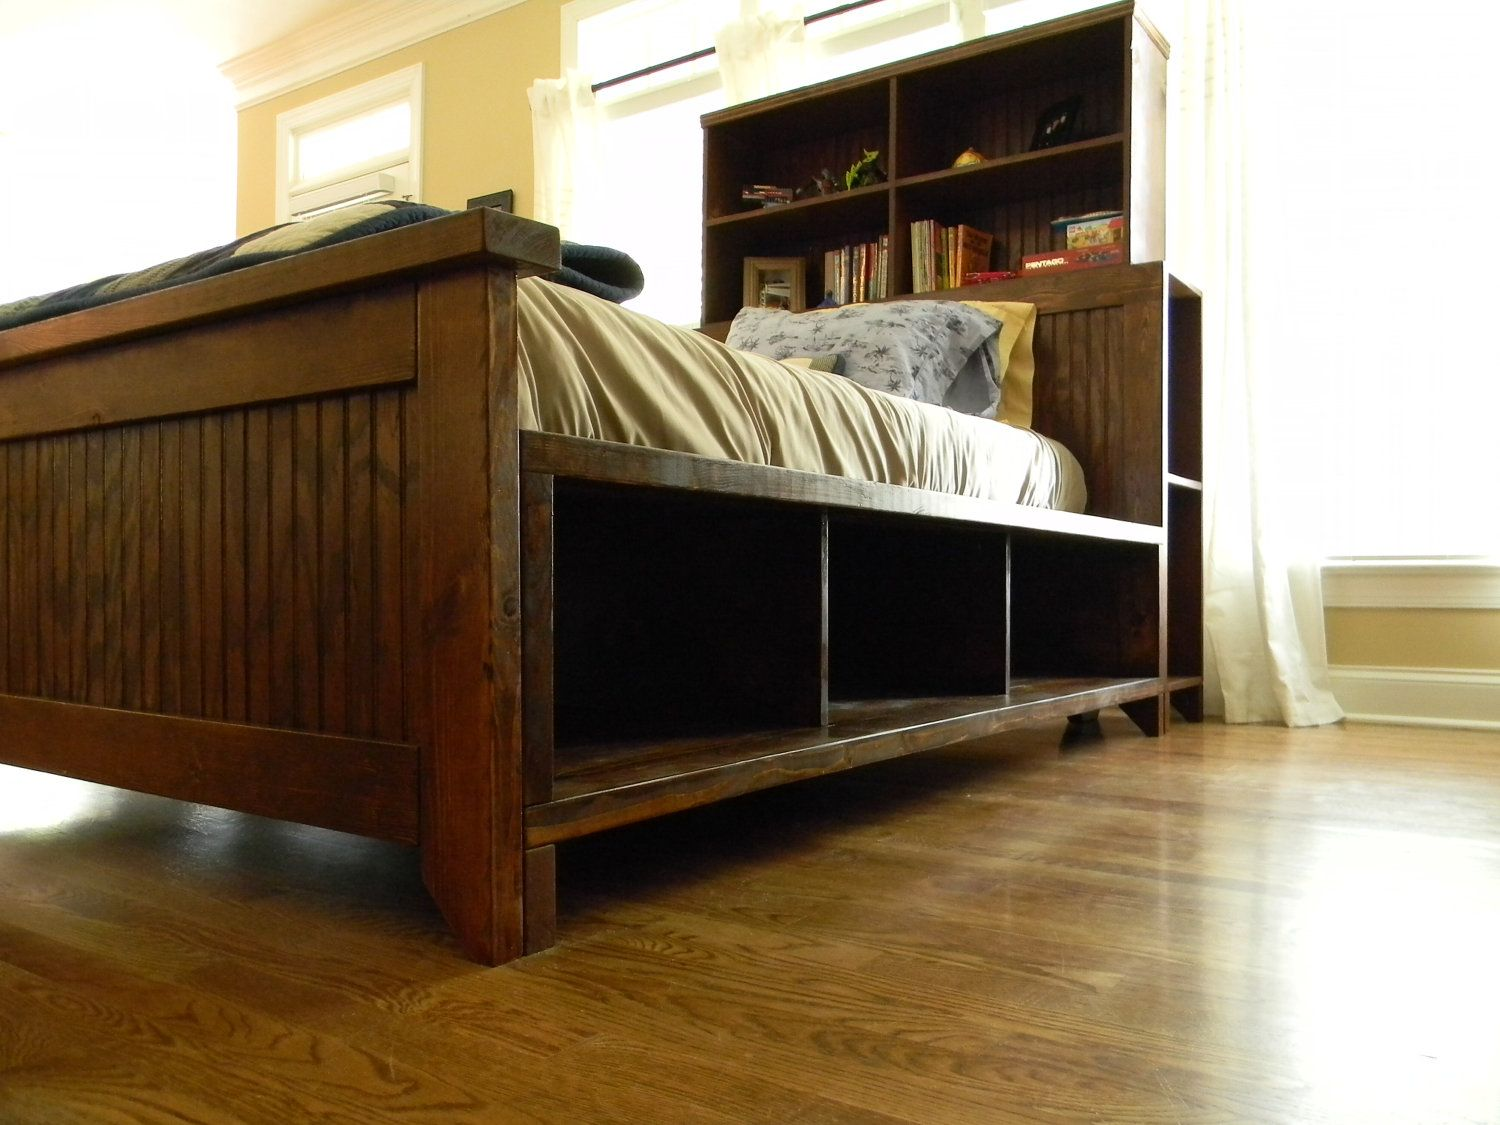 I Want This Bed For The Boys Storage Bed Furniture Bed Storage [ 1125 x 1500 Pixel ]